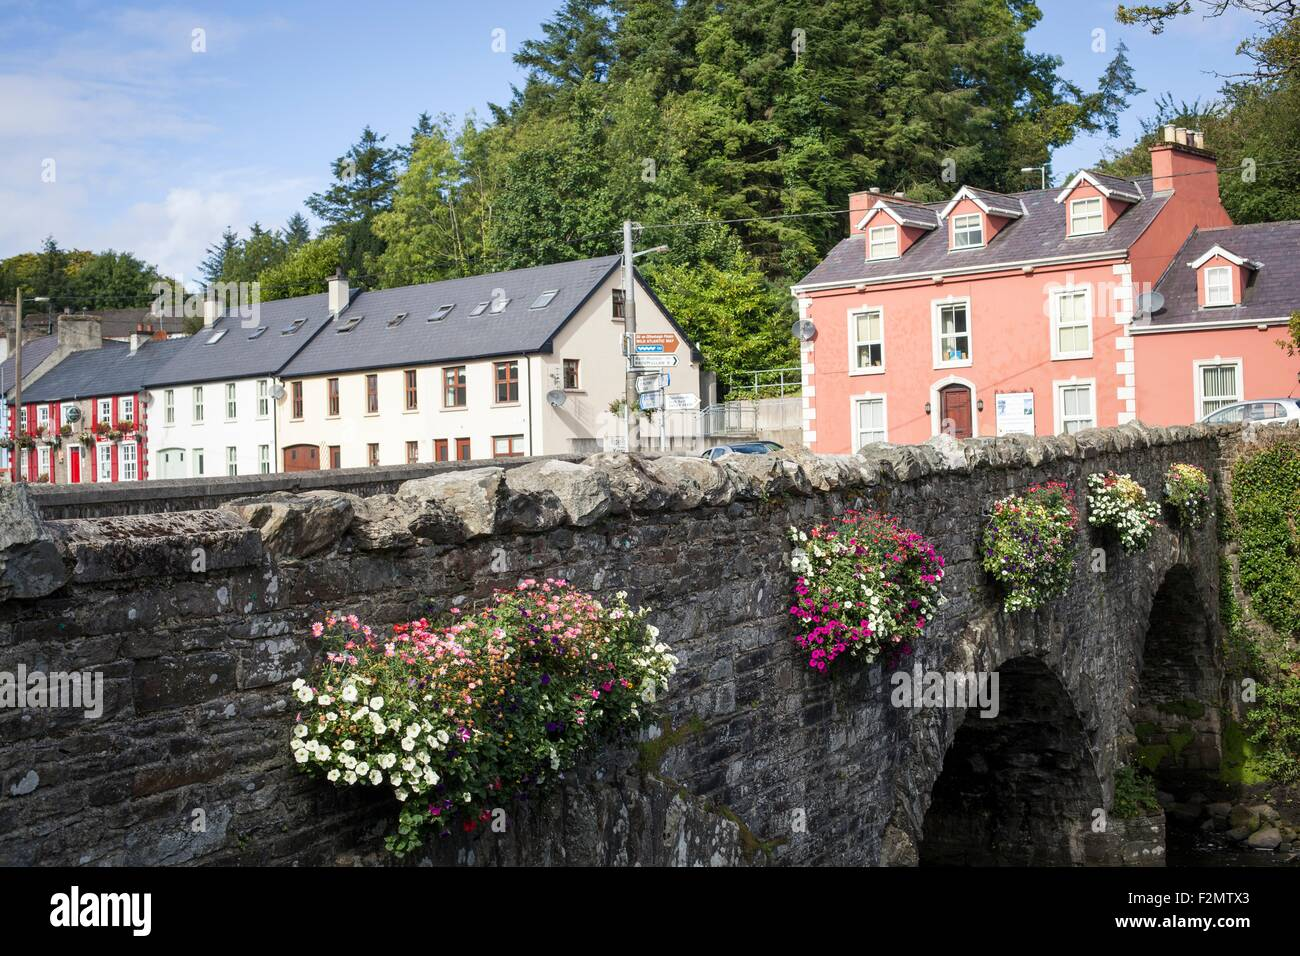 The town of Ramelton in Co. Donegal, Ireland - Stock Image